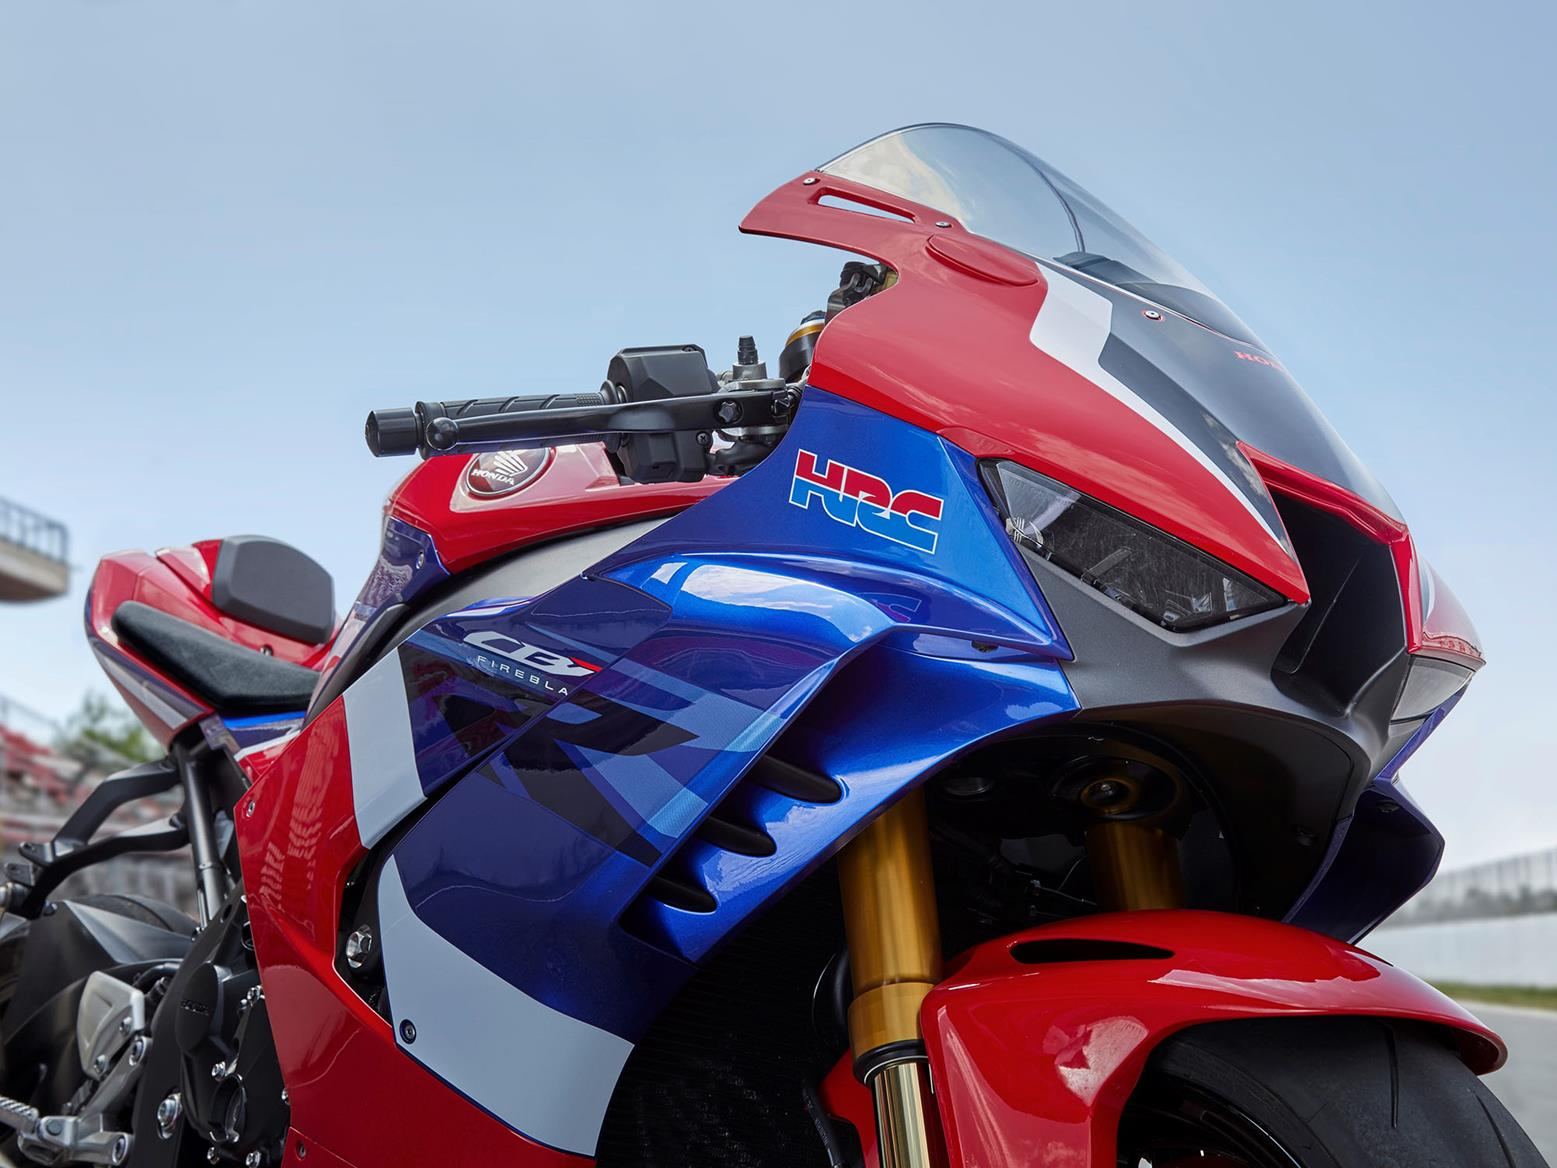 Honda CBR1000RR-R Fireblade SP wings